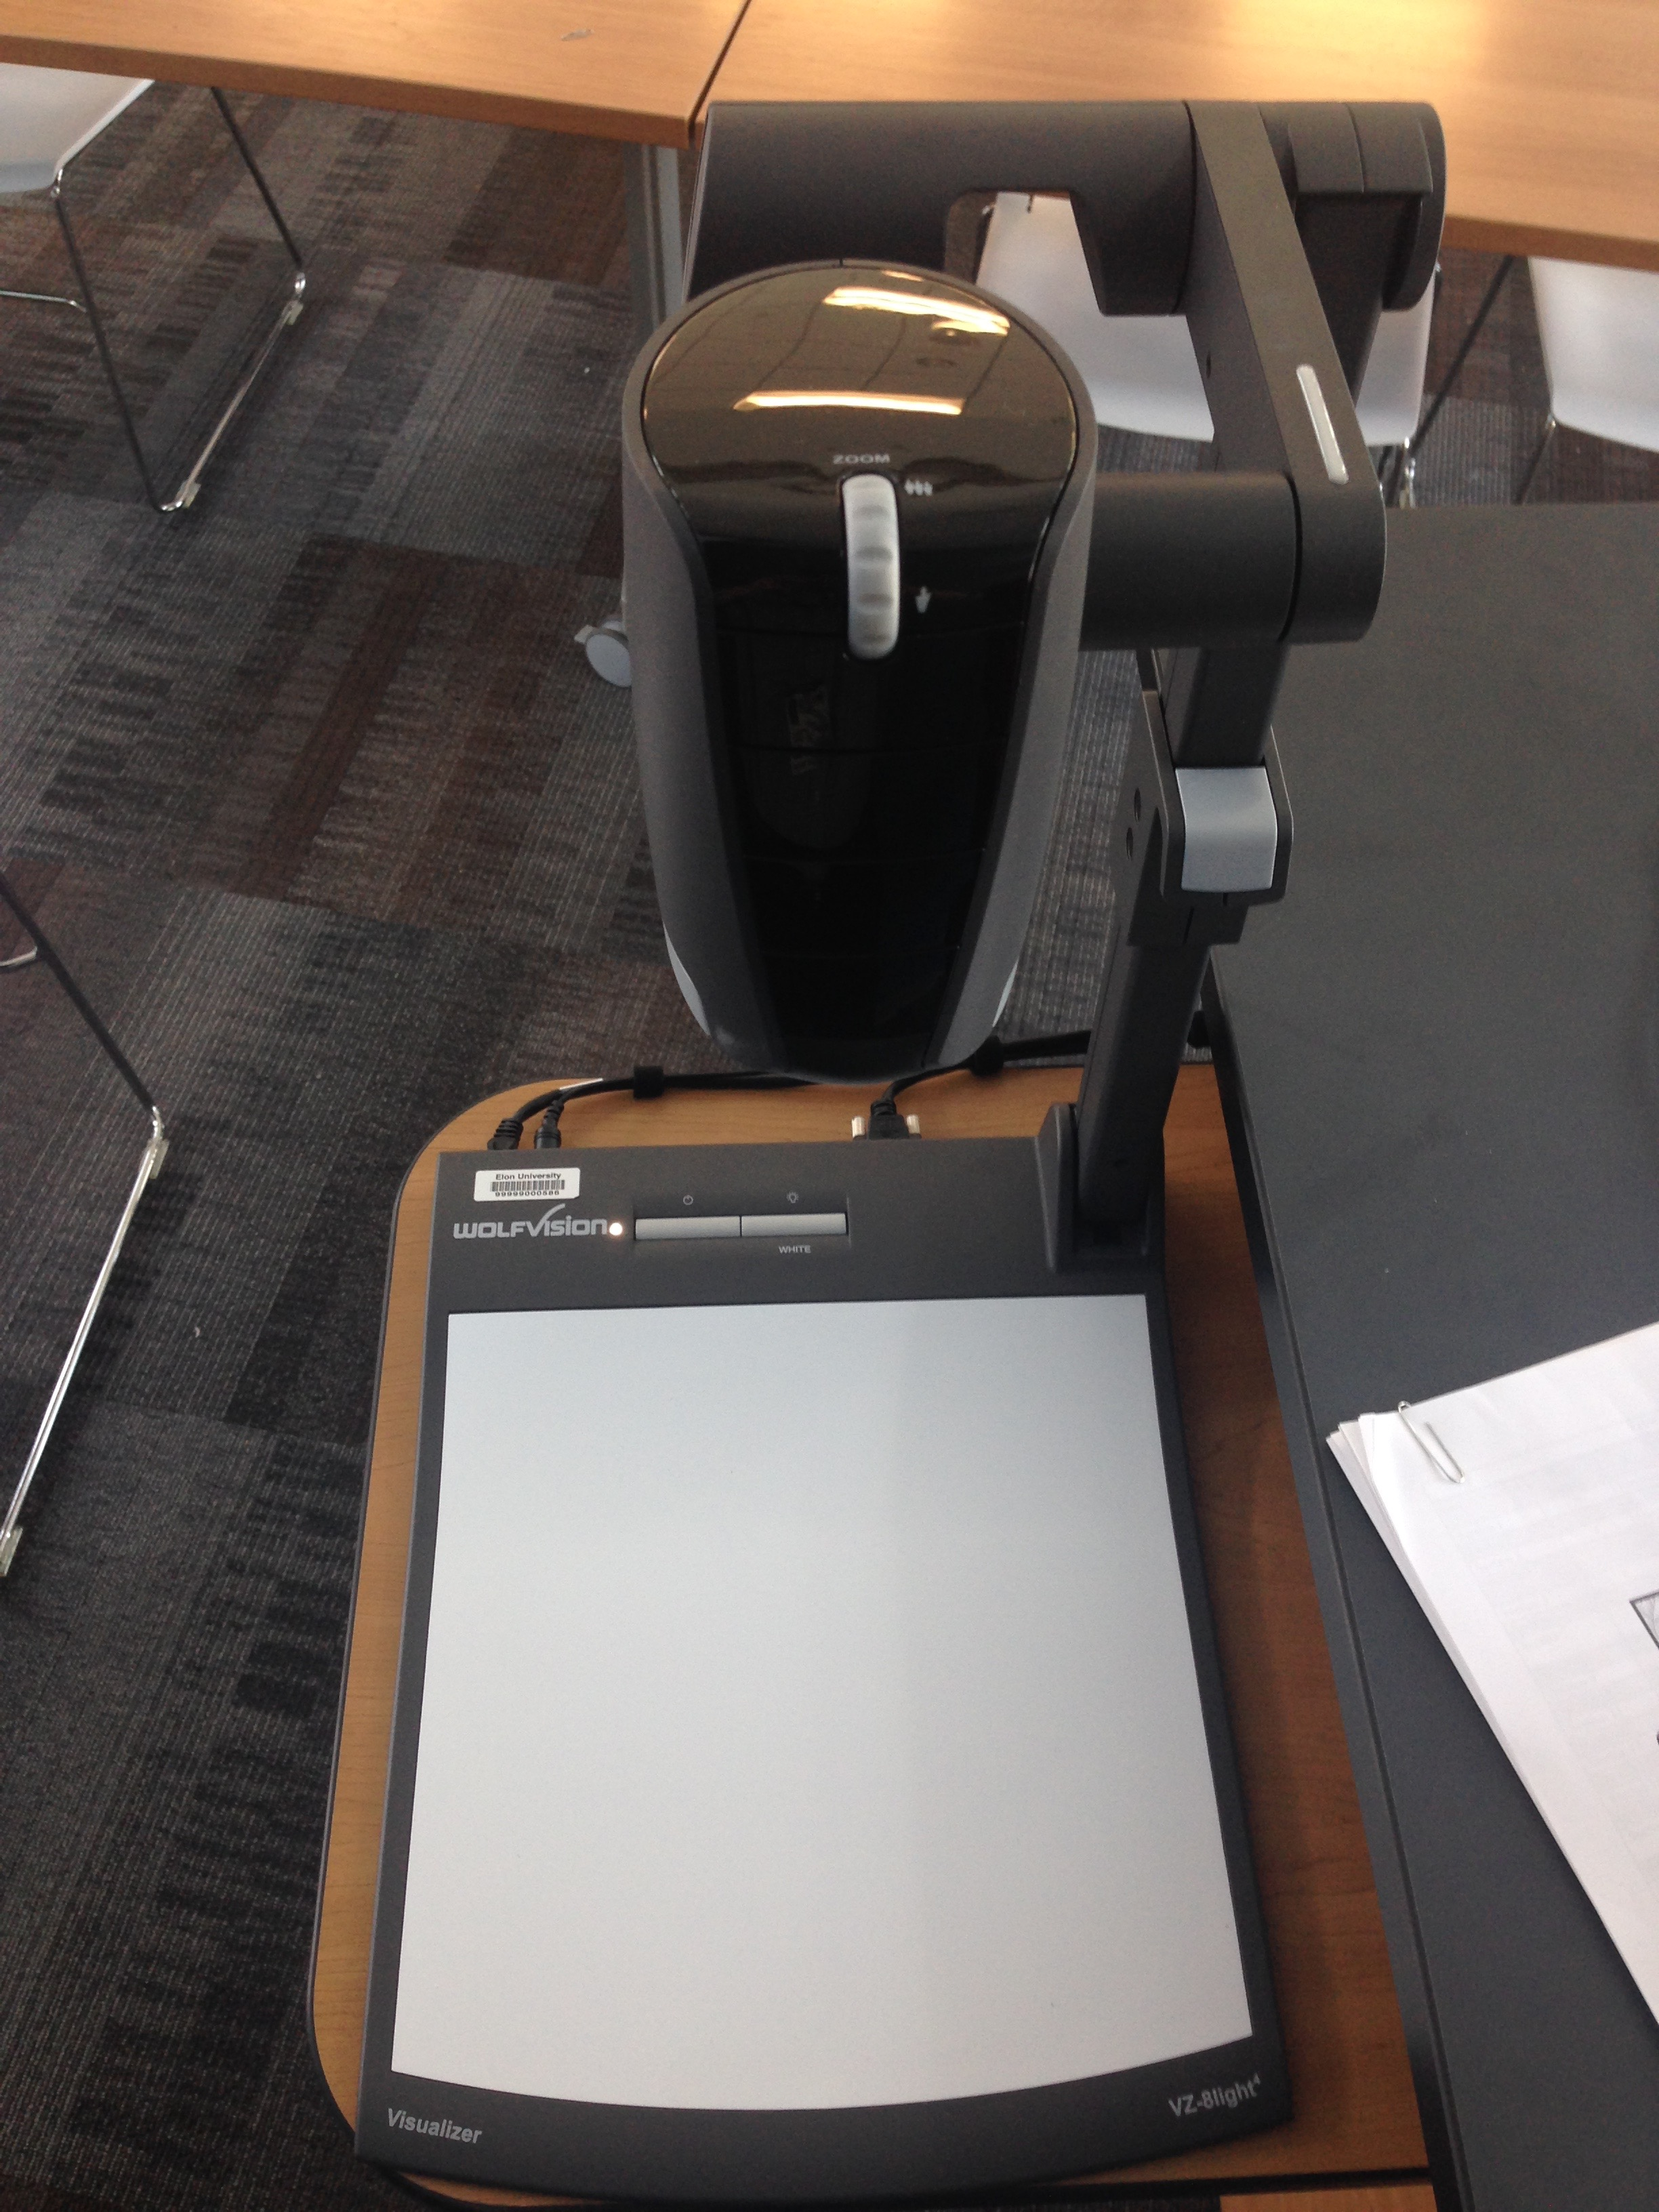 A photo of the document camera.